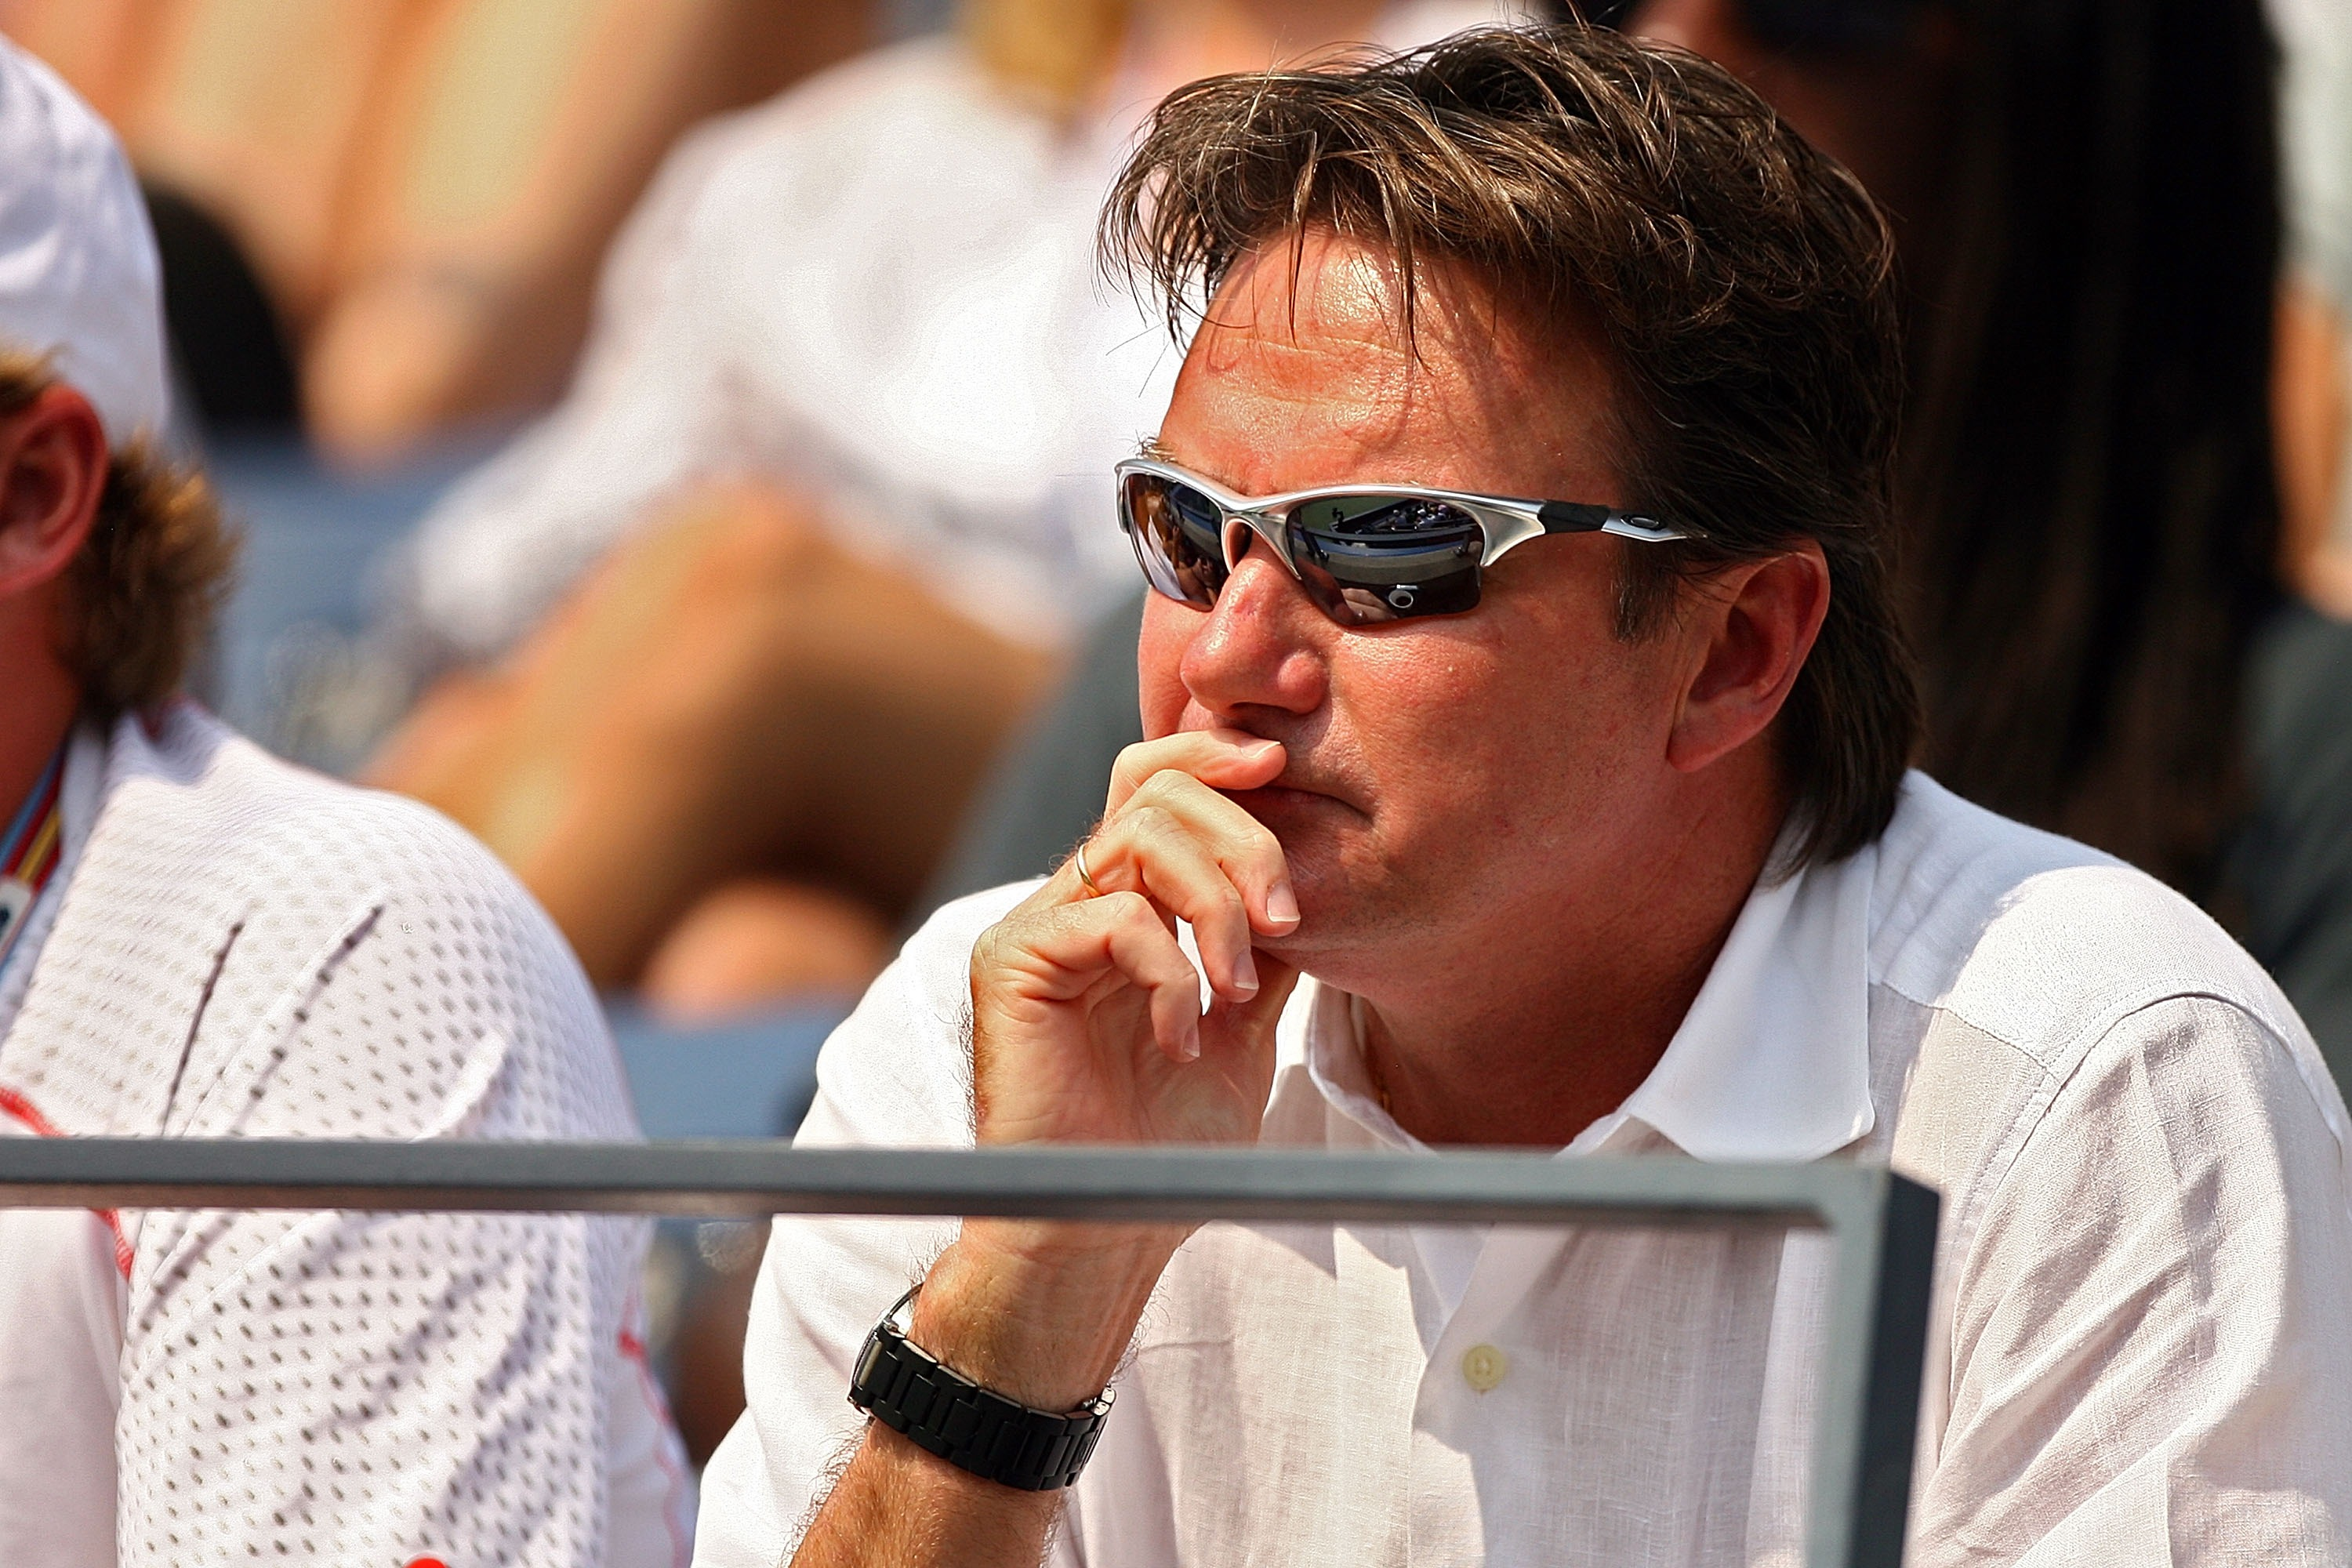 Jimmy Connors at the U.S. Open 2007